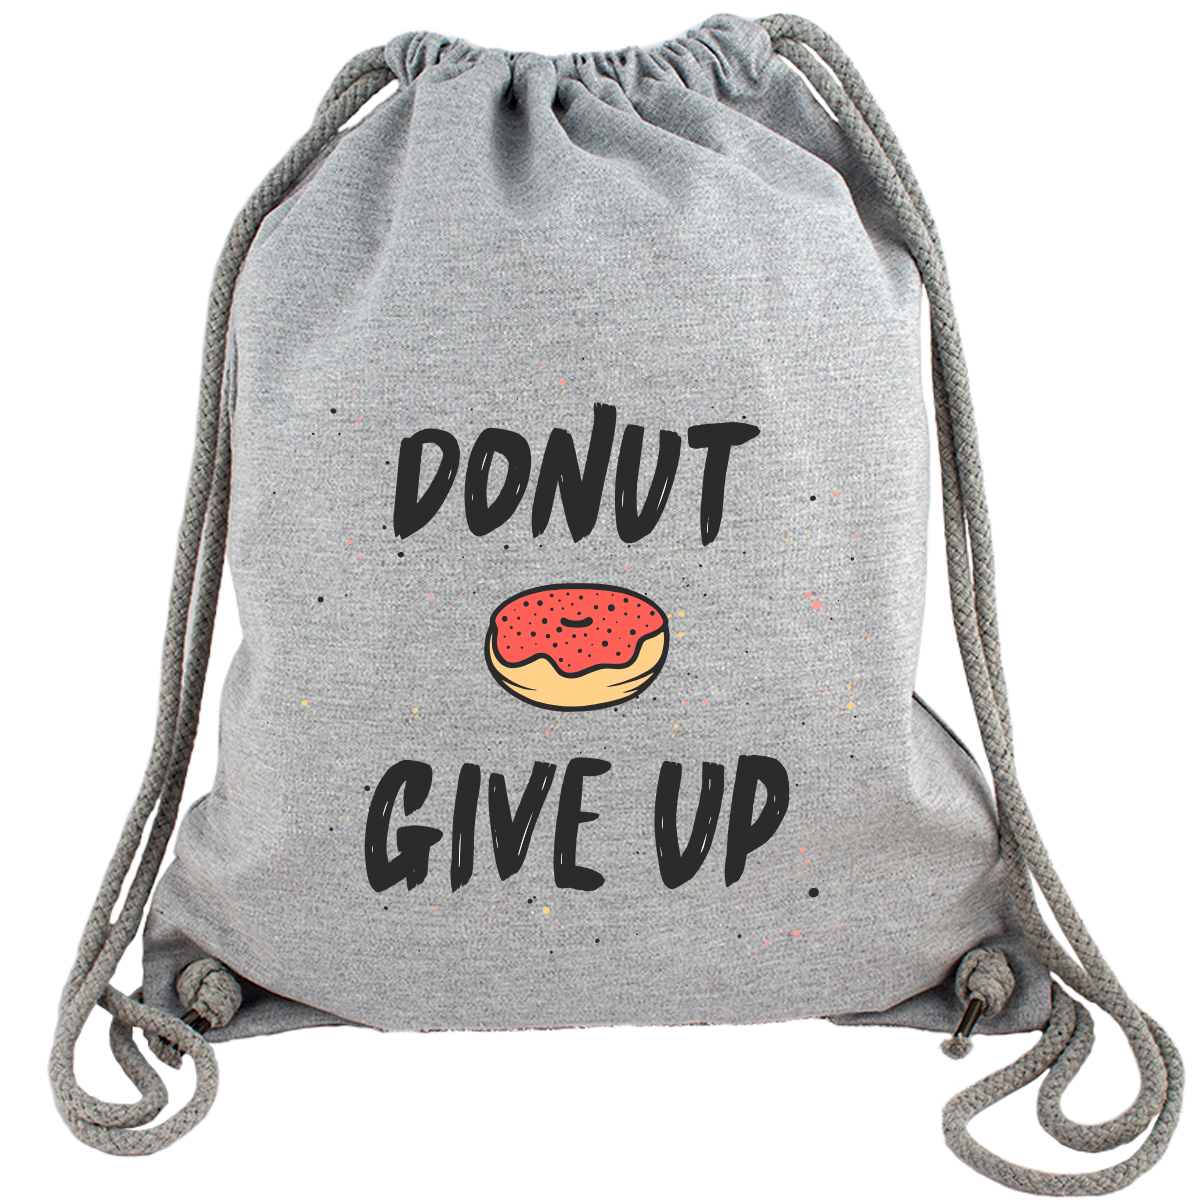 Donut give up - Gym Bag Turnbeutel